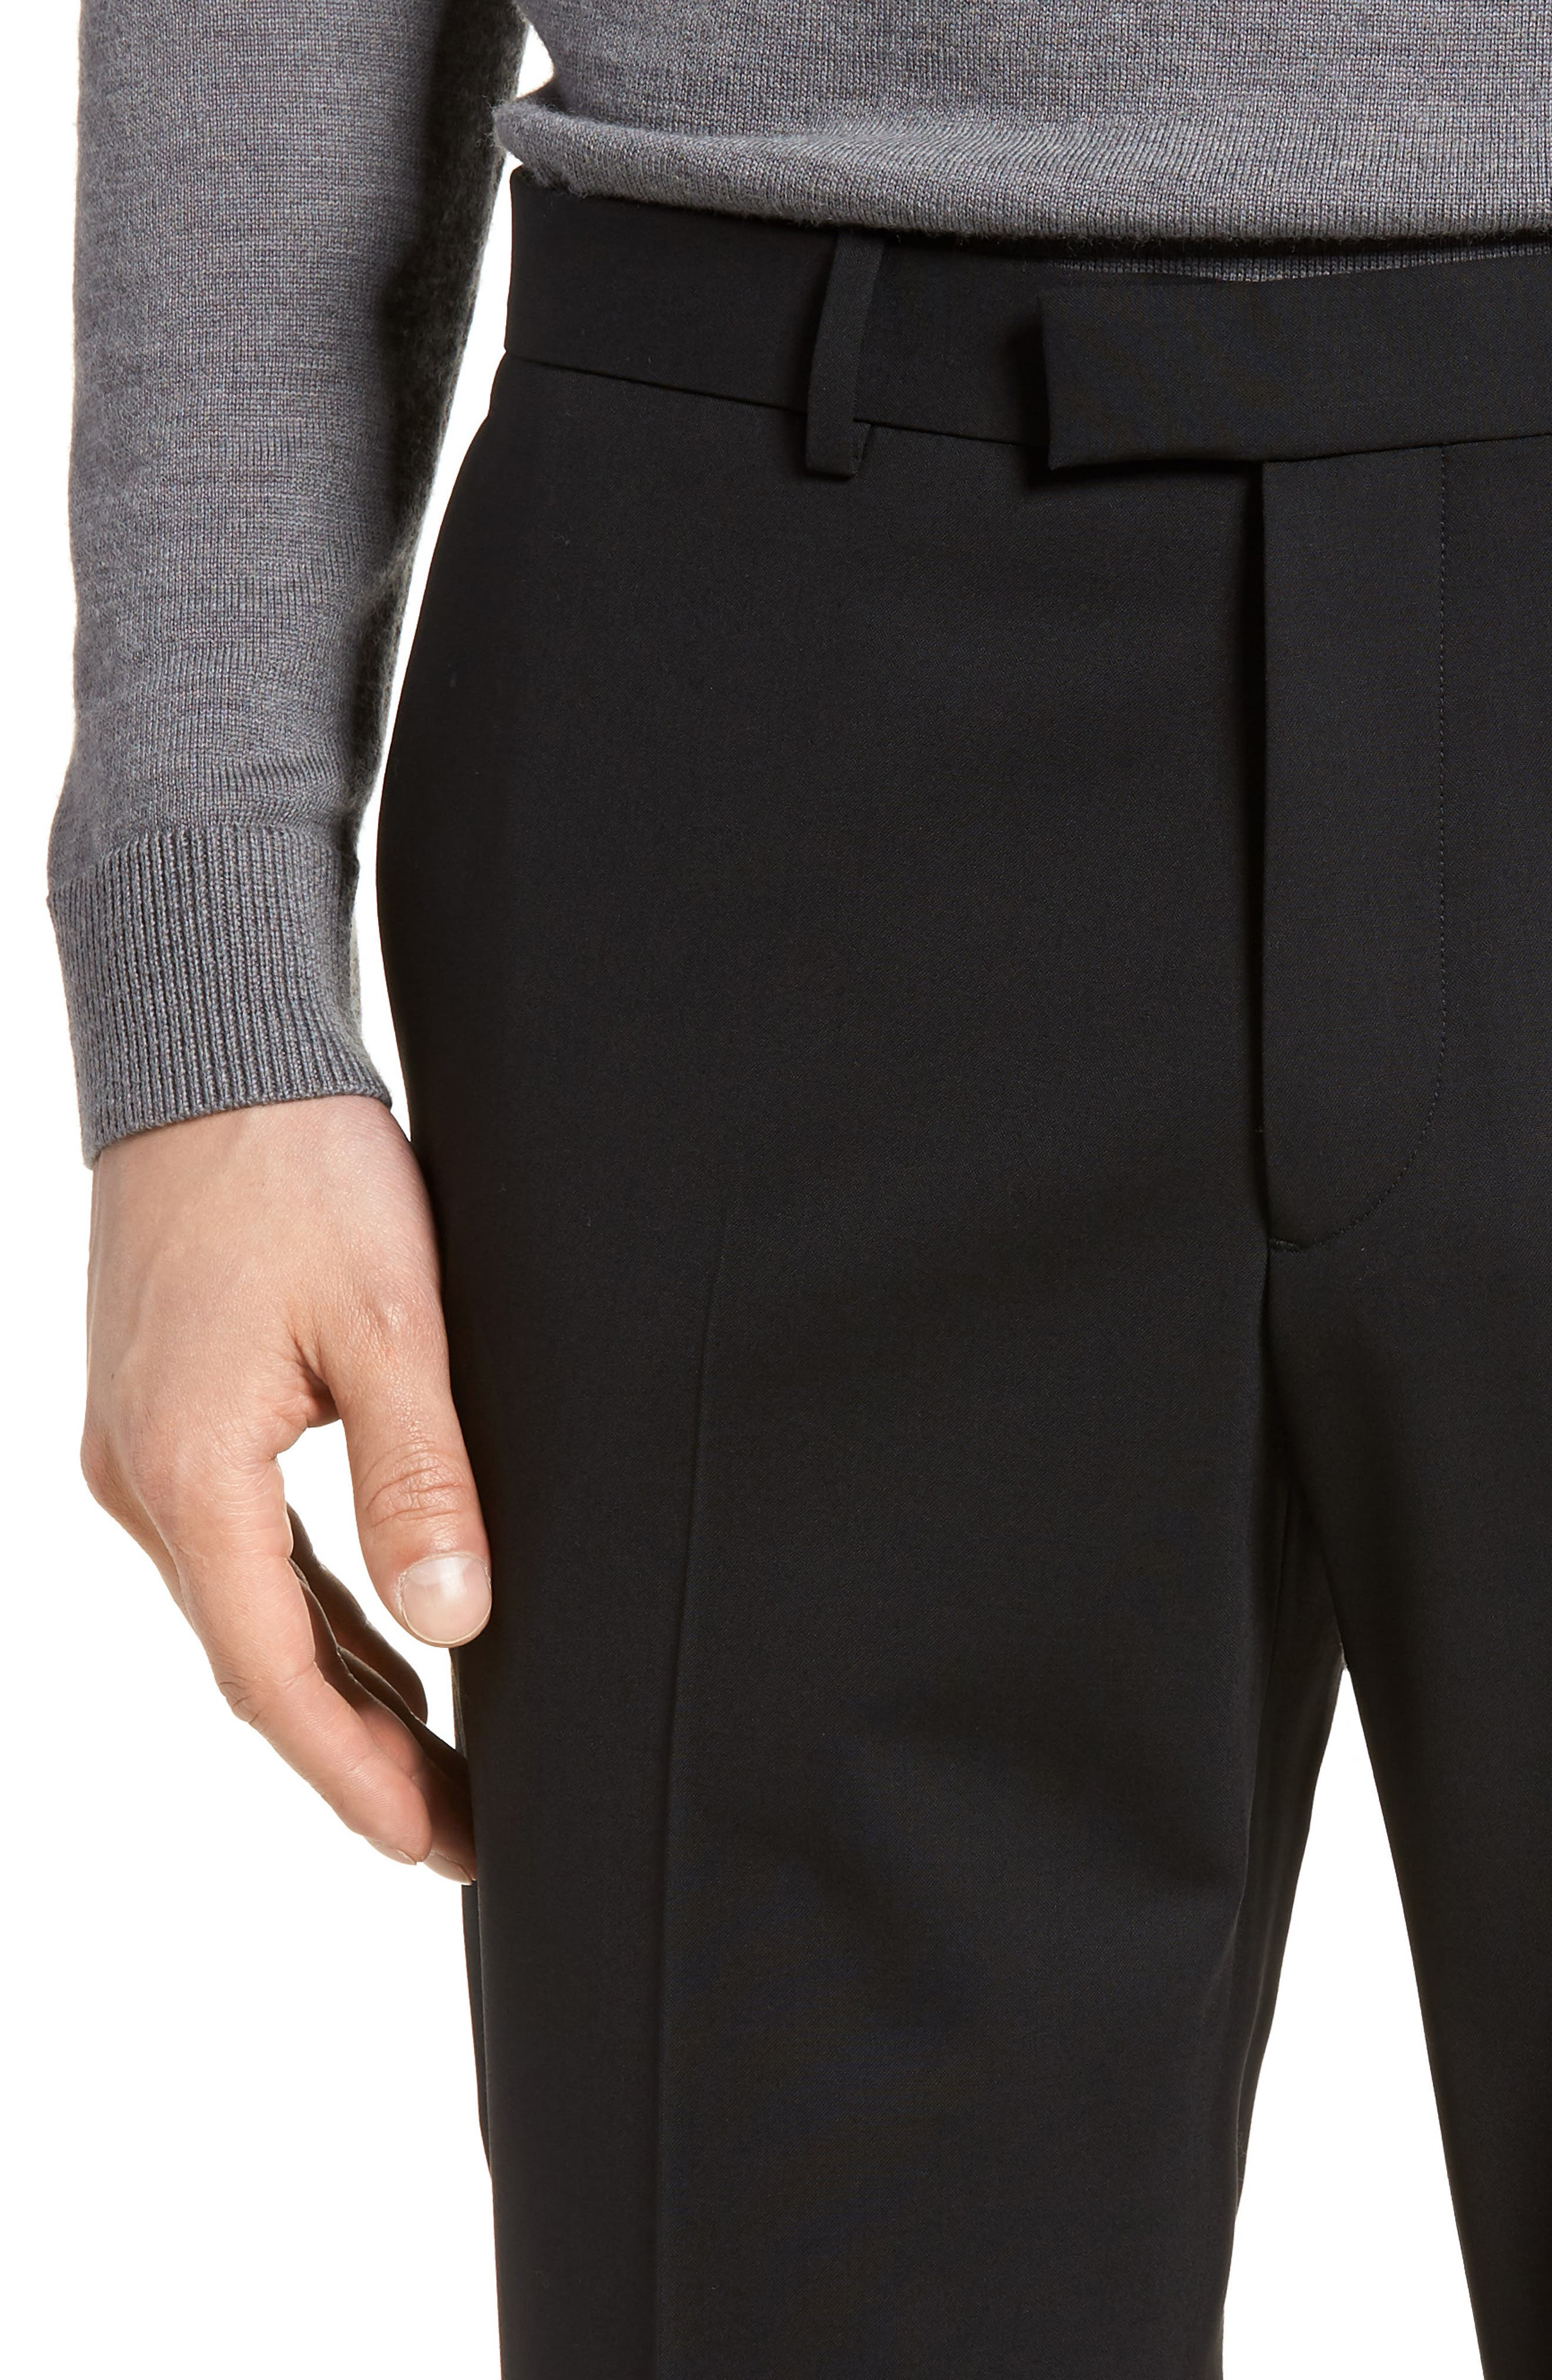 Marlo Flat Front Stretch Wool Pants,                             Alternate thumbnail 4, color,                             001